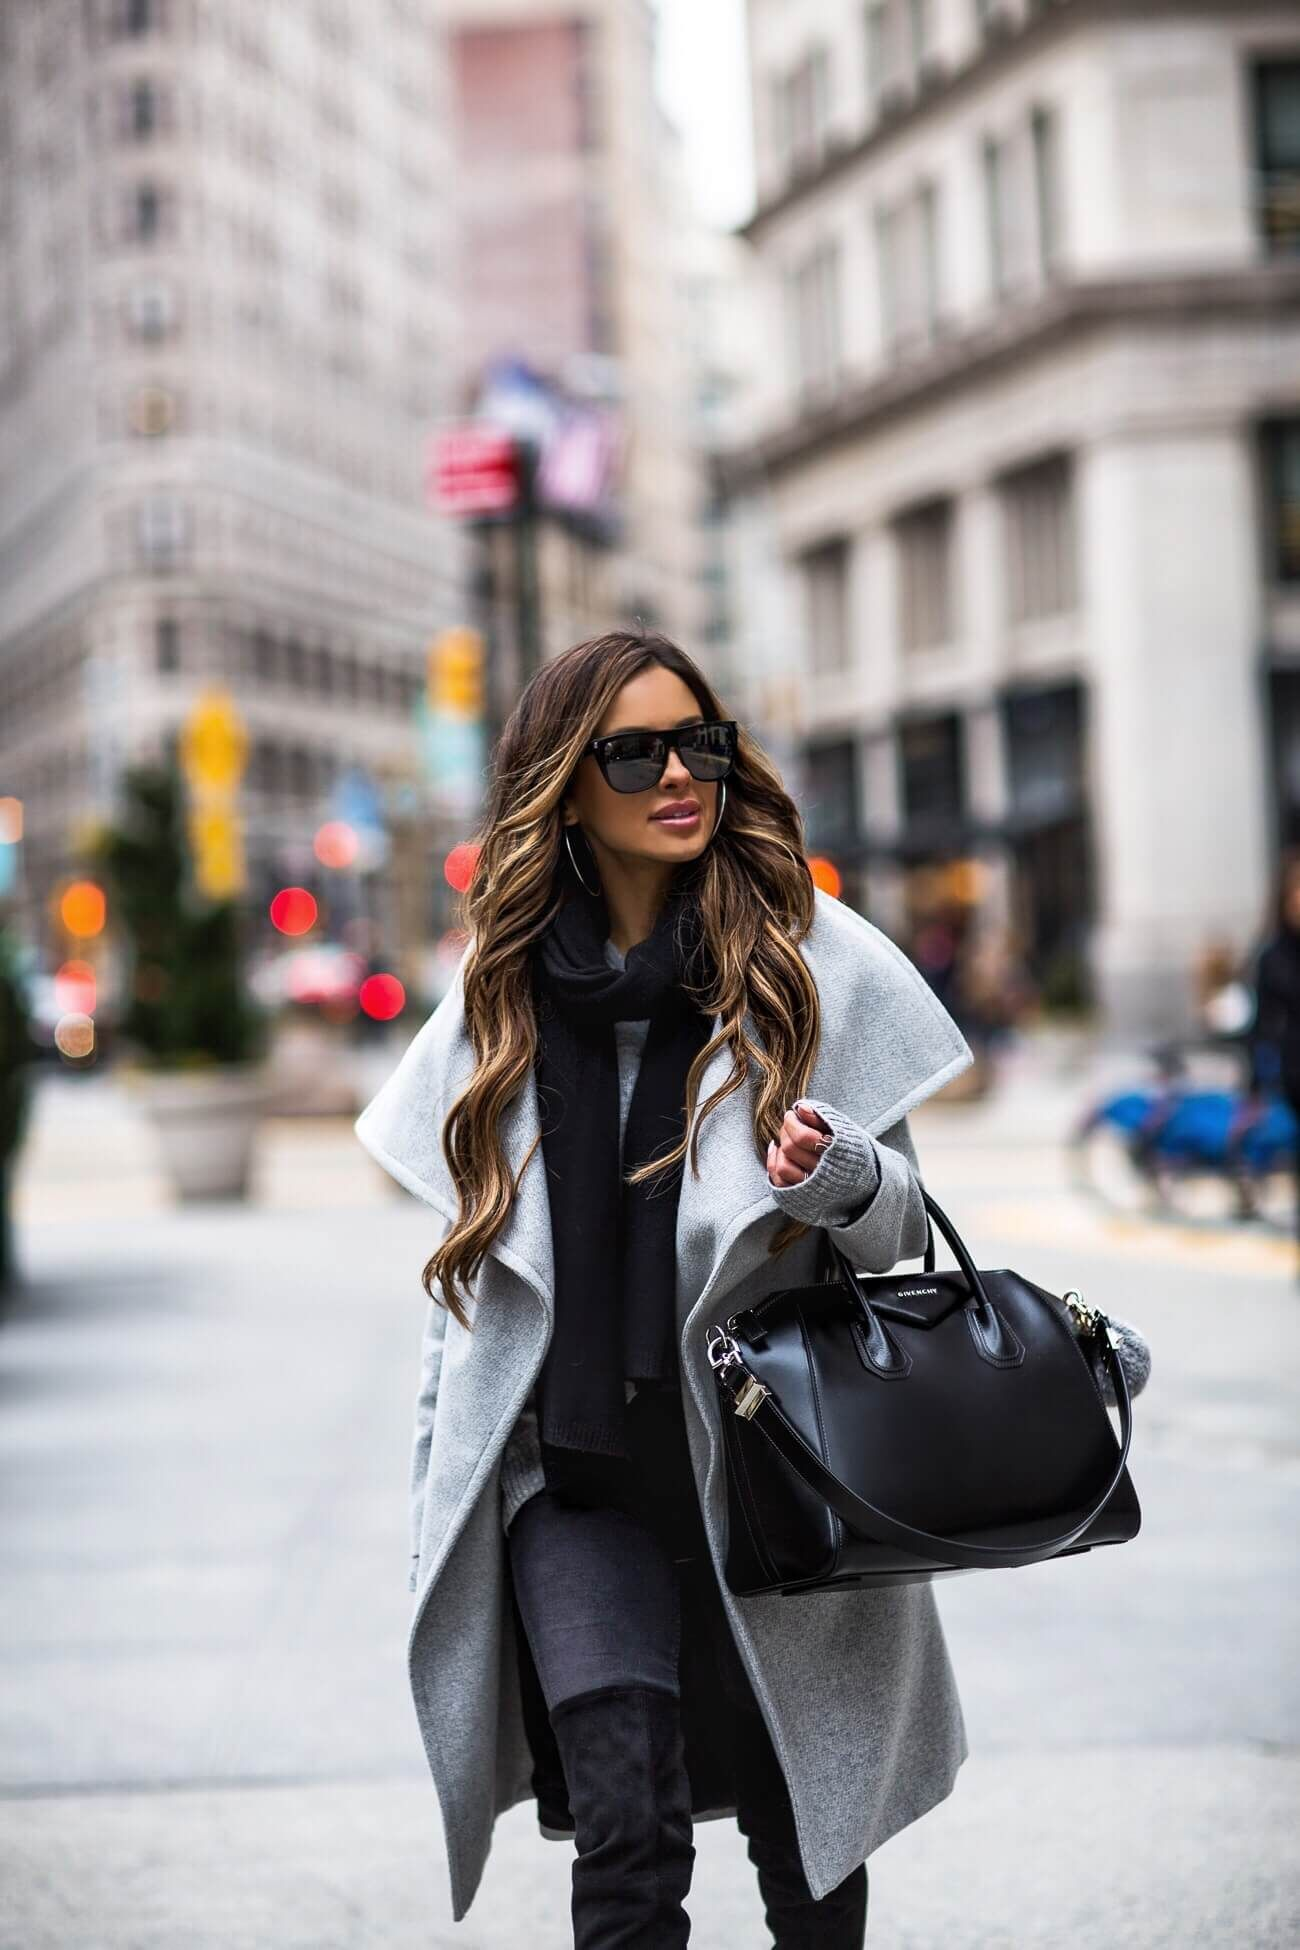 fashion blogger mia mia mine wearing a gray coat and black